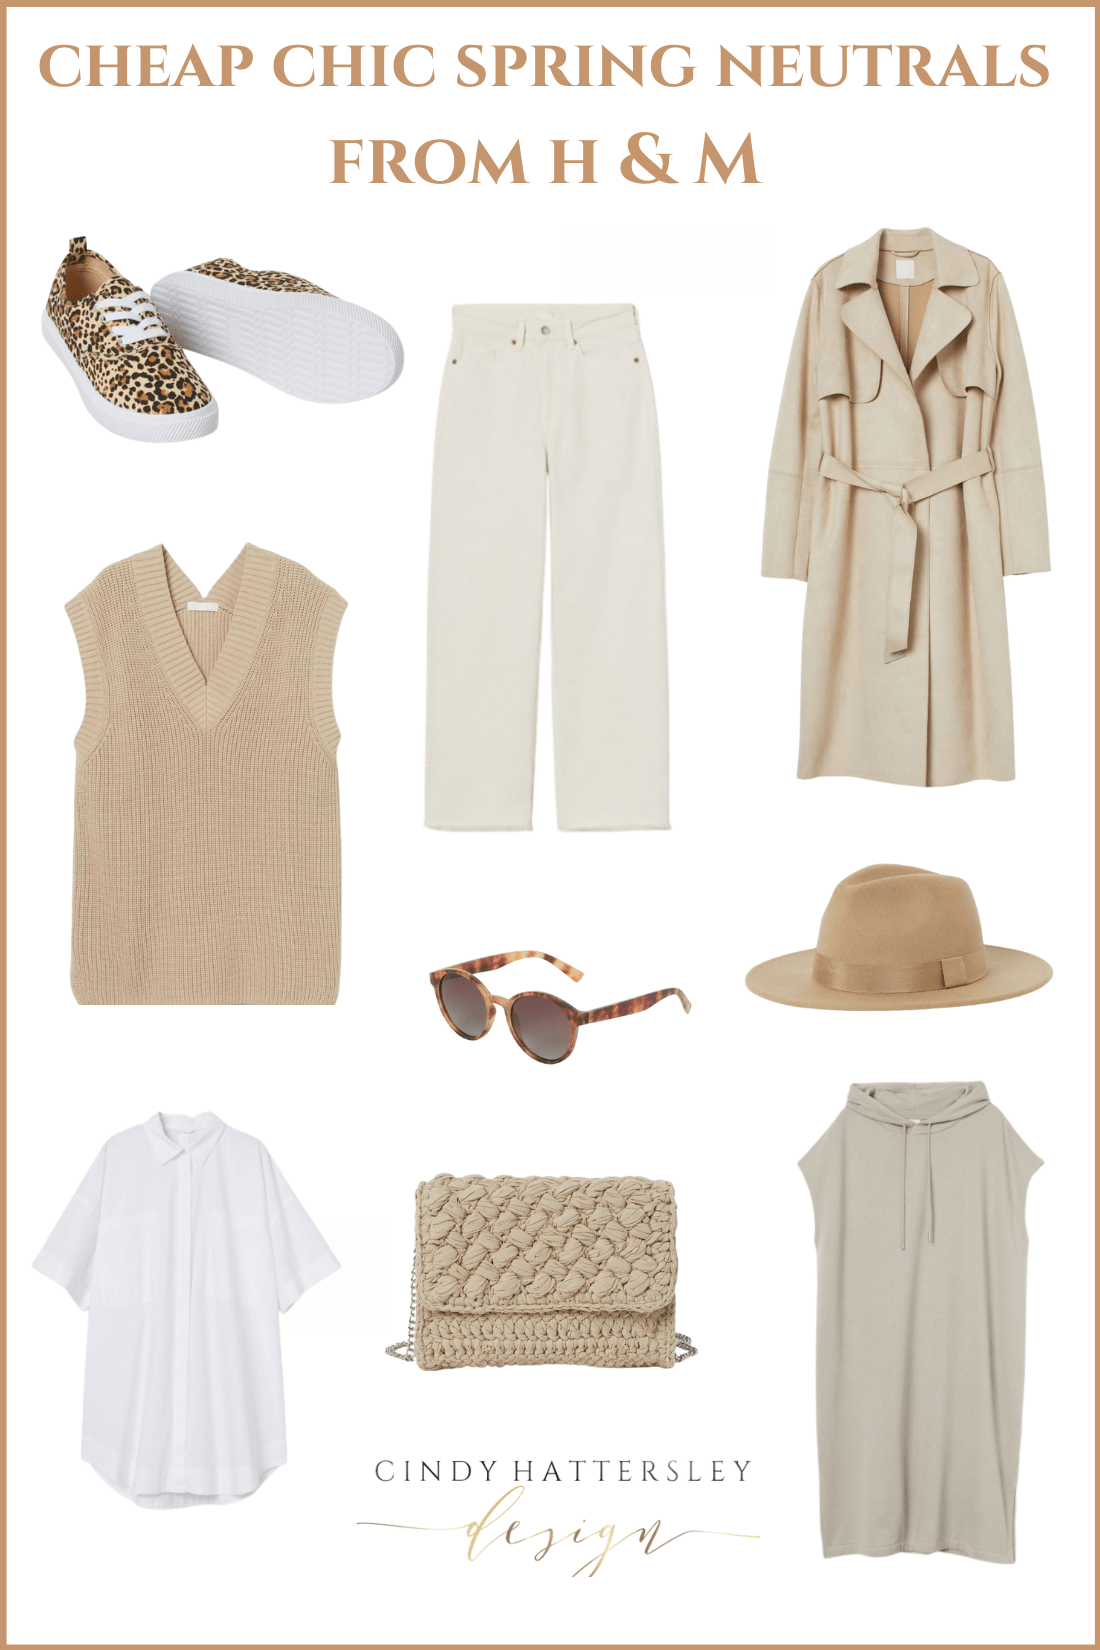 cheap chic neutrals from H&M outfit of the week Cindy Hattersley